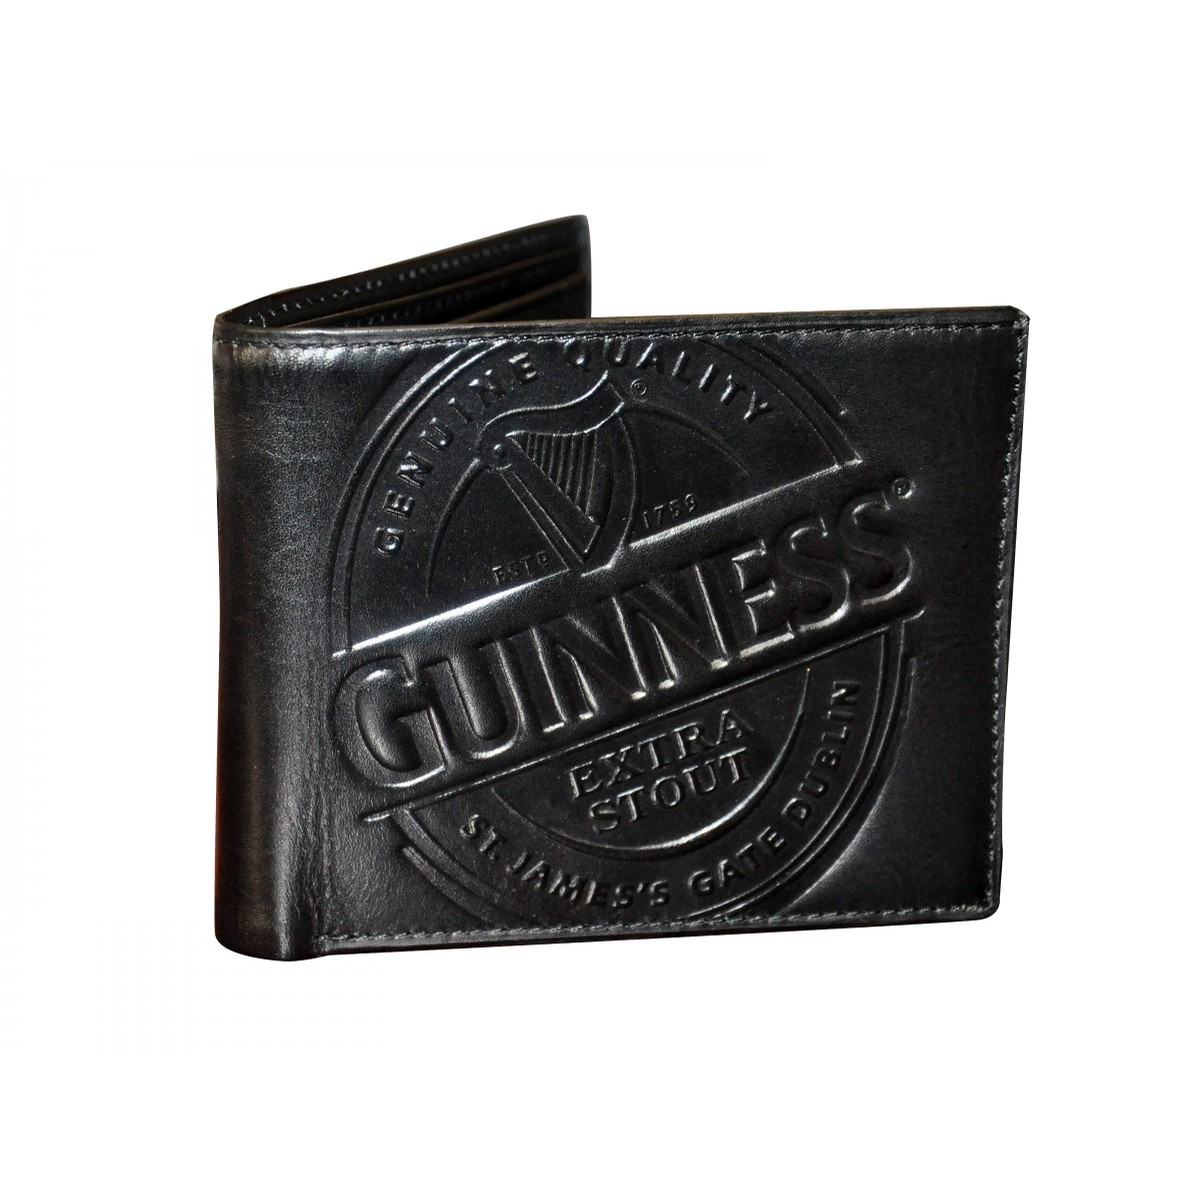 Guinness Black Label Leather Wallet